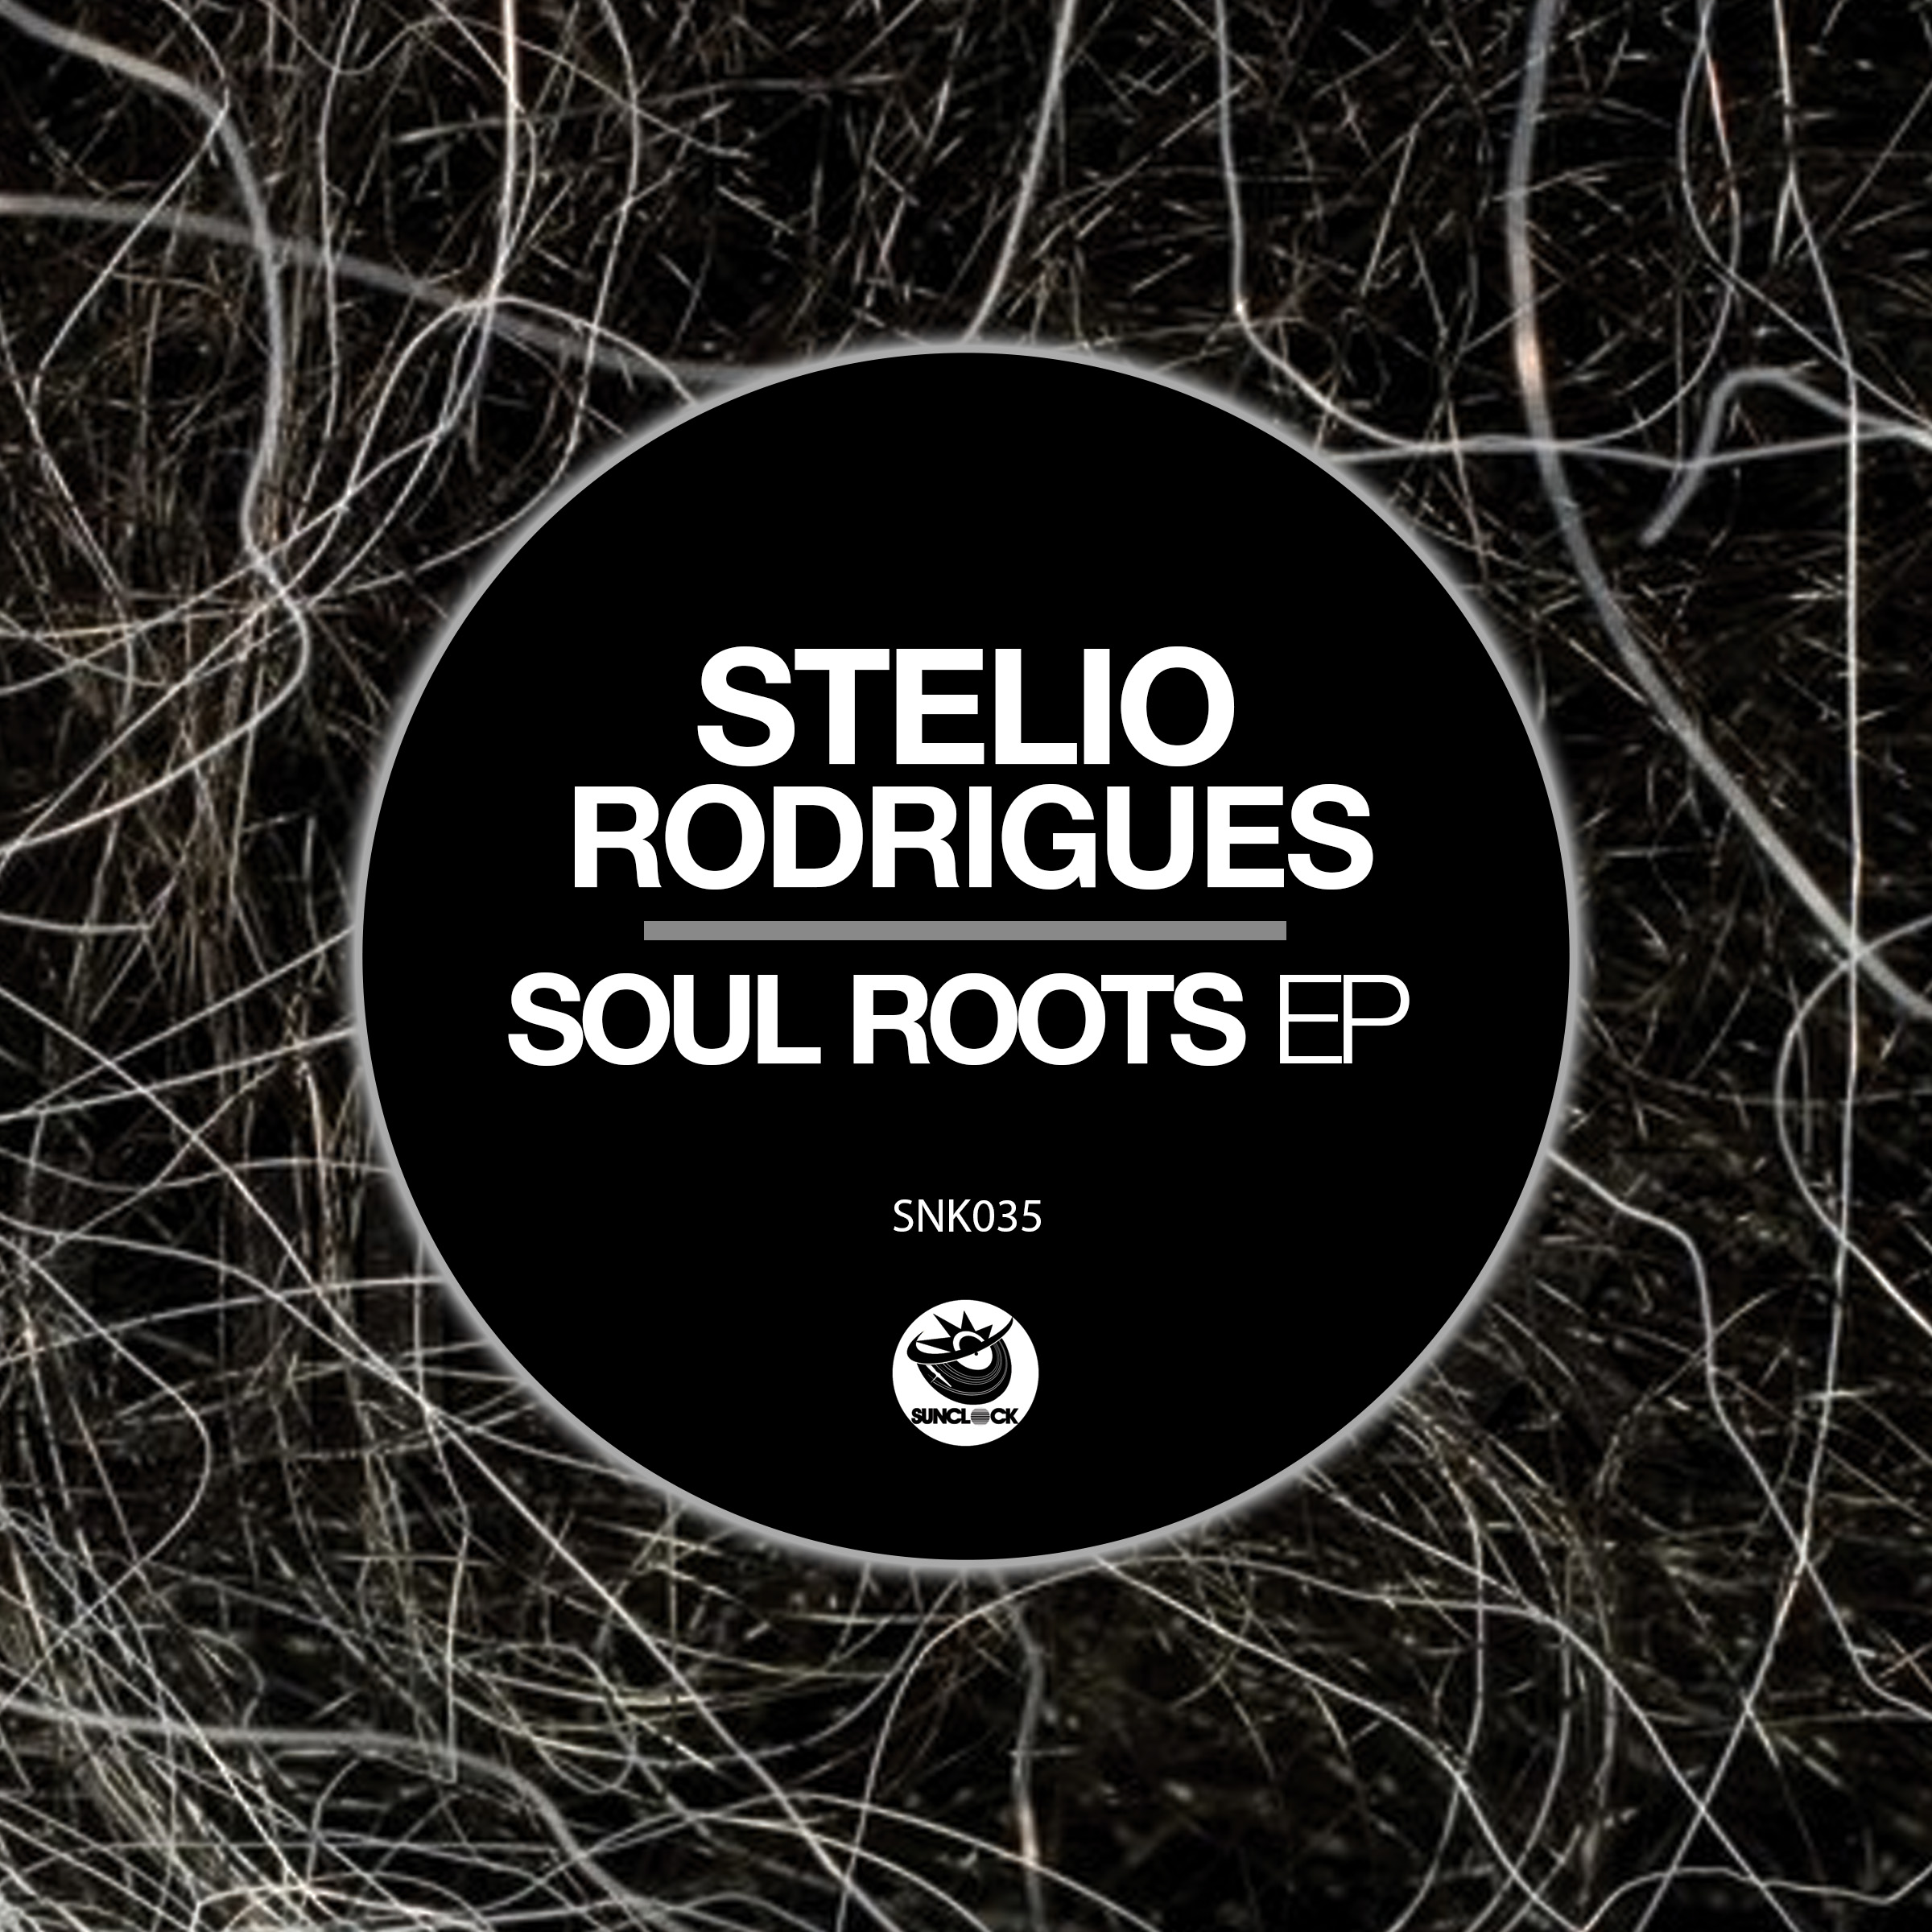 Stelio Rodrigues - Soul Roots Ep - SNK035 Cover